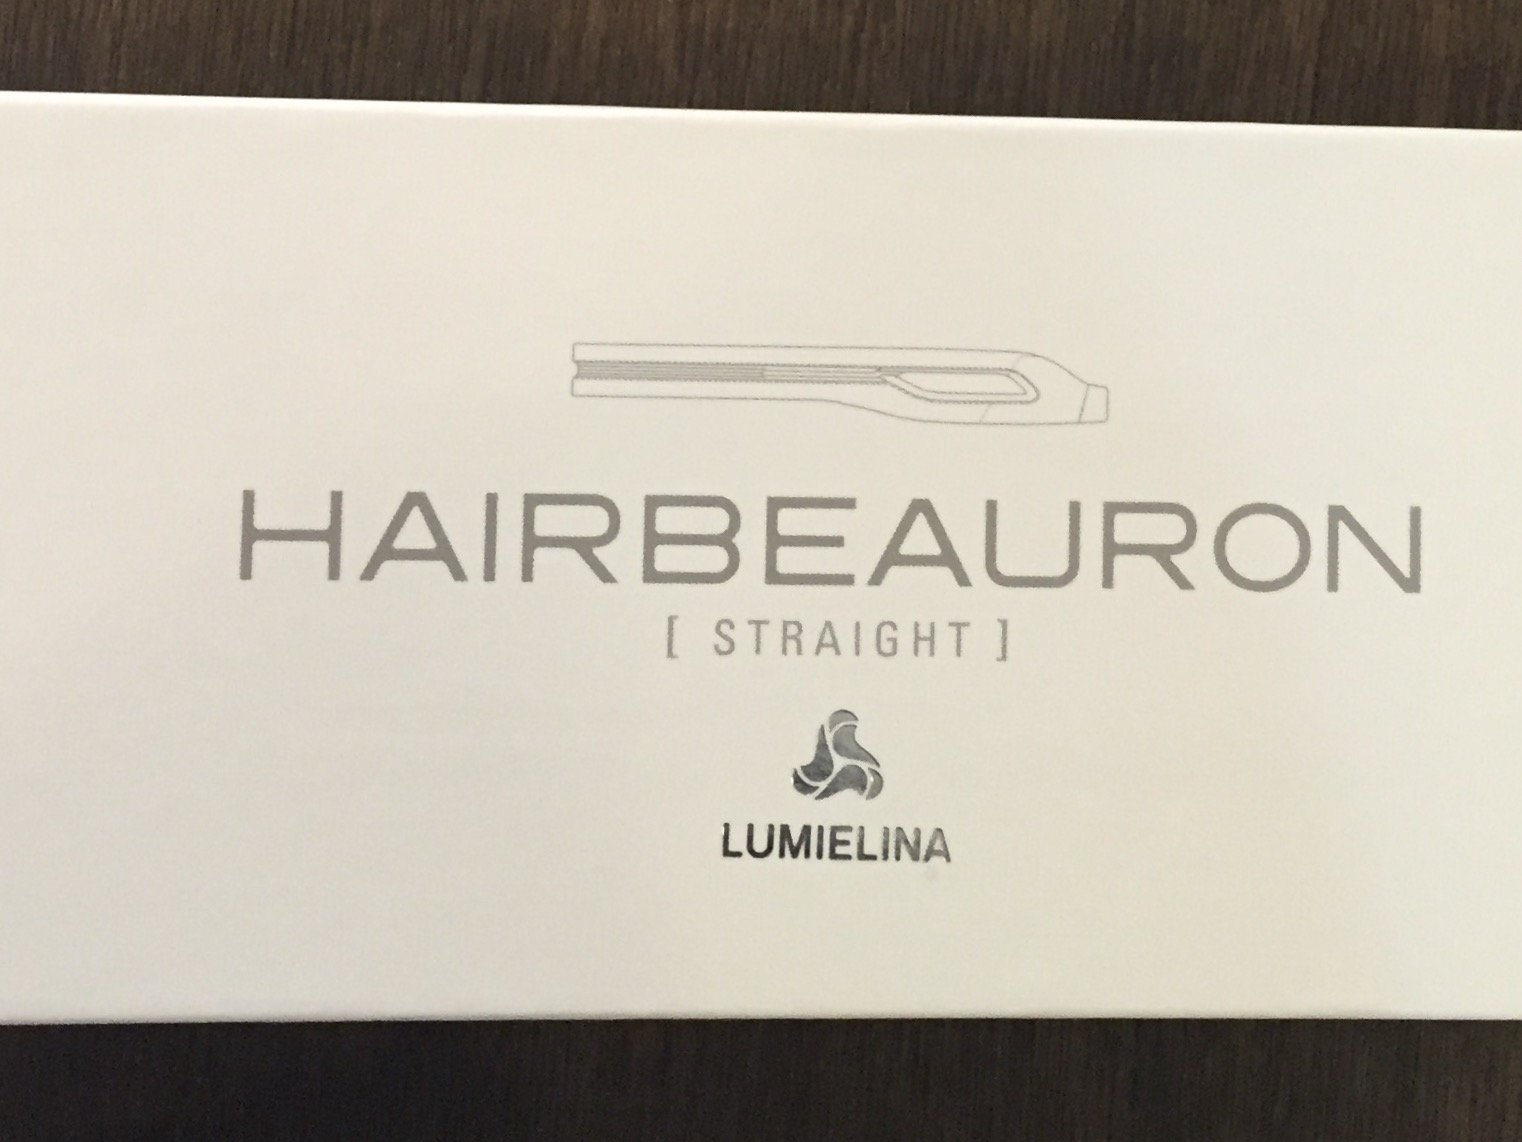 Lumielina Hairbeauron Straight AF27 (Japan Import) by HAIRBEAURON (hair view Ron) (Image #1)